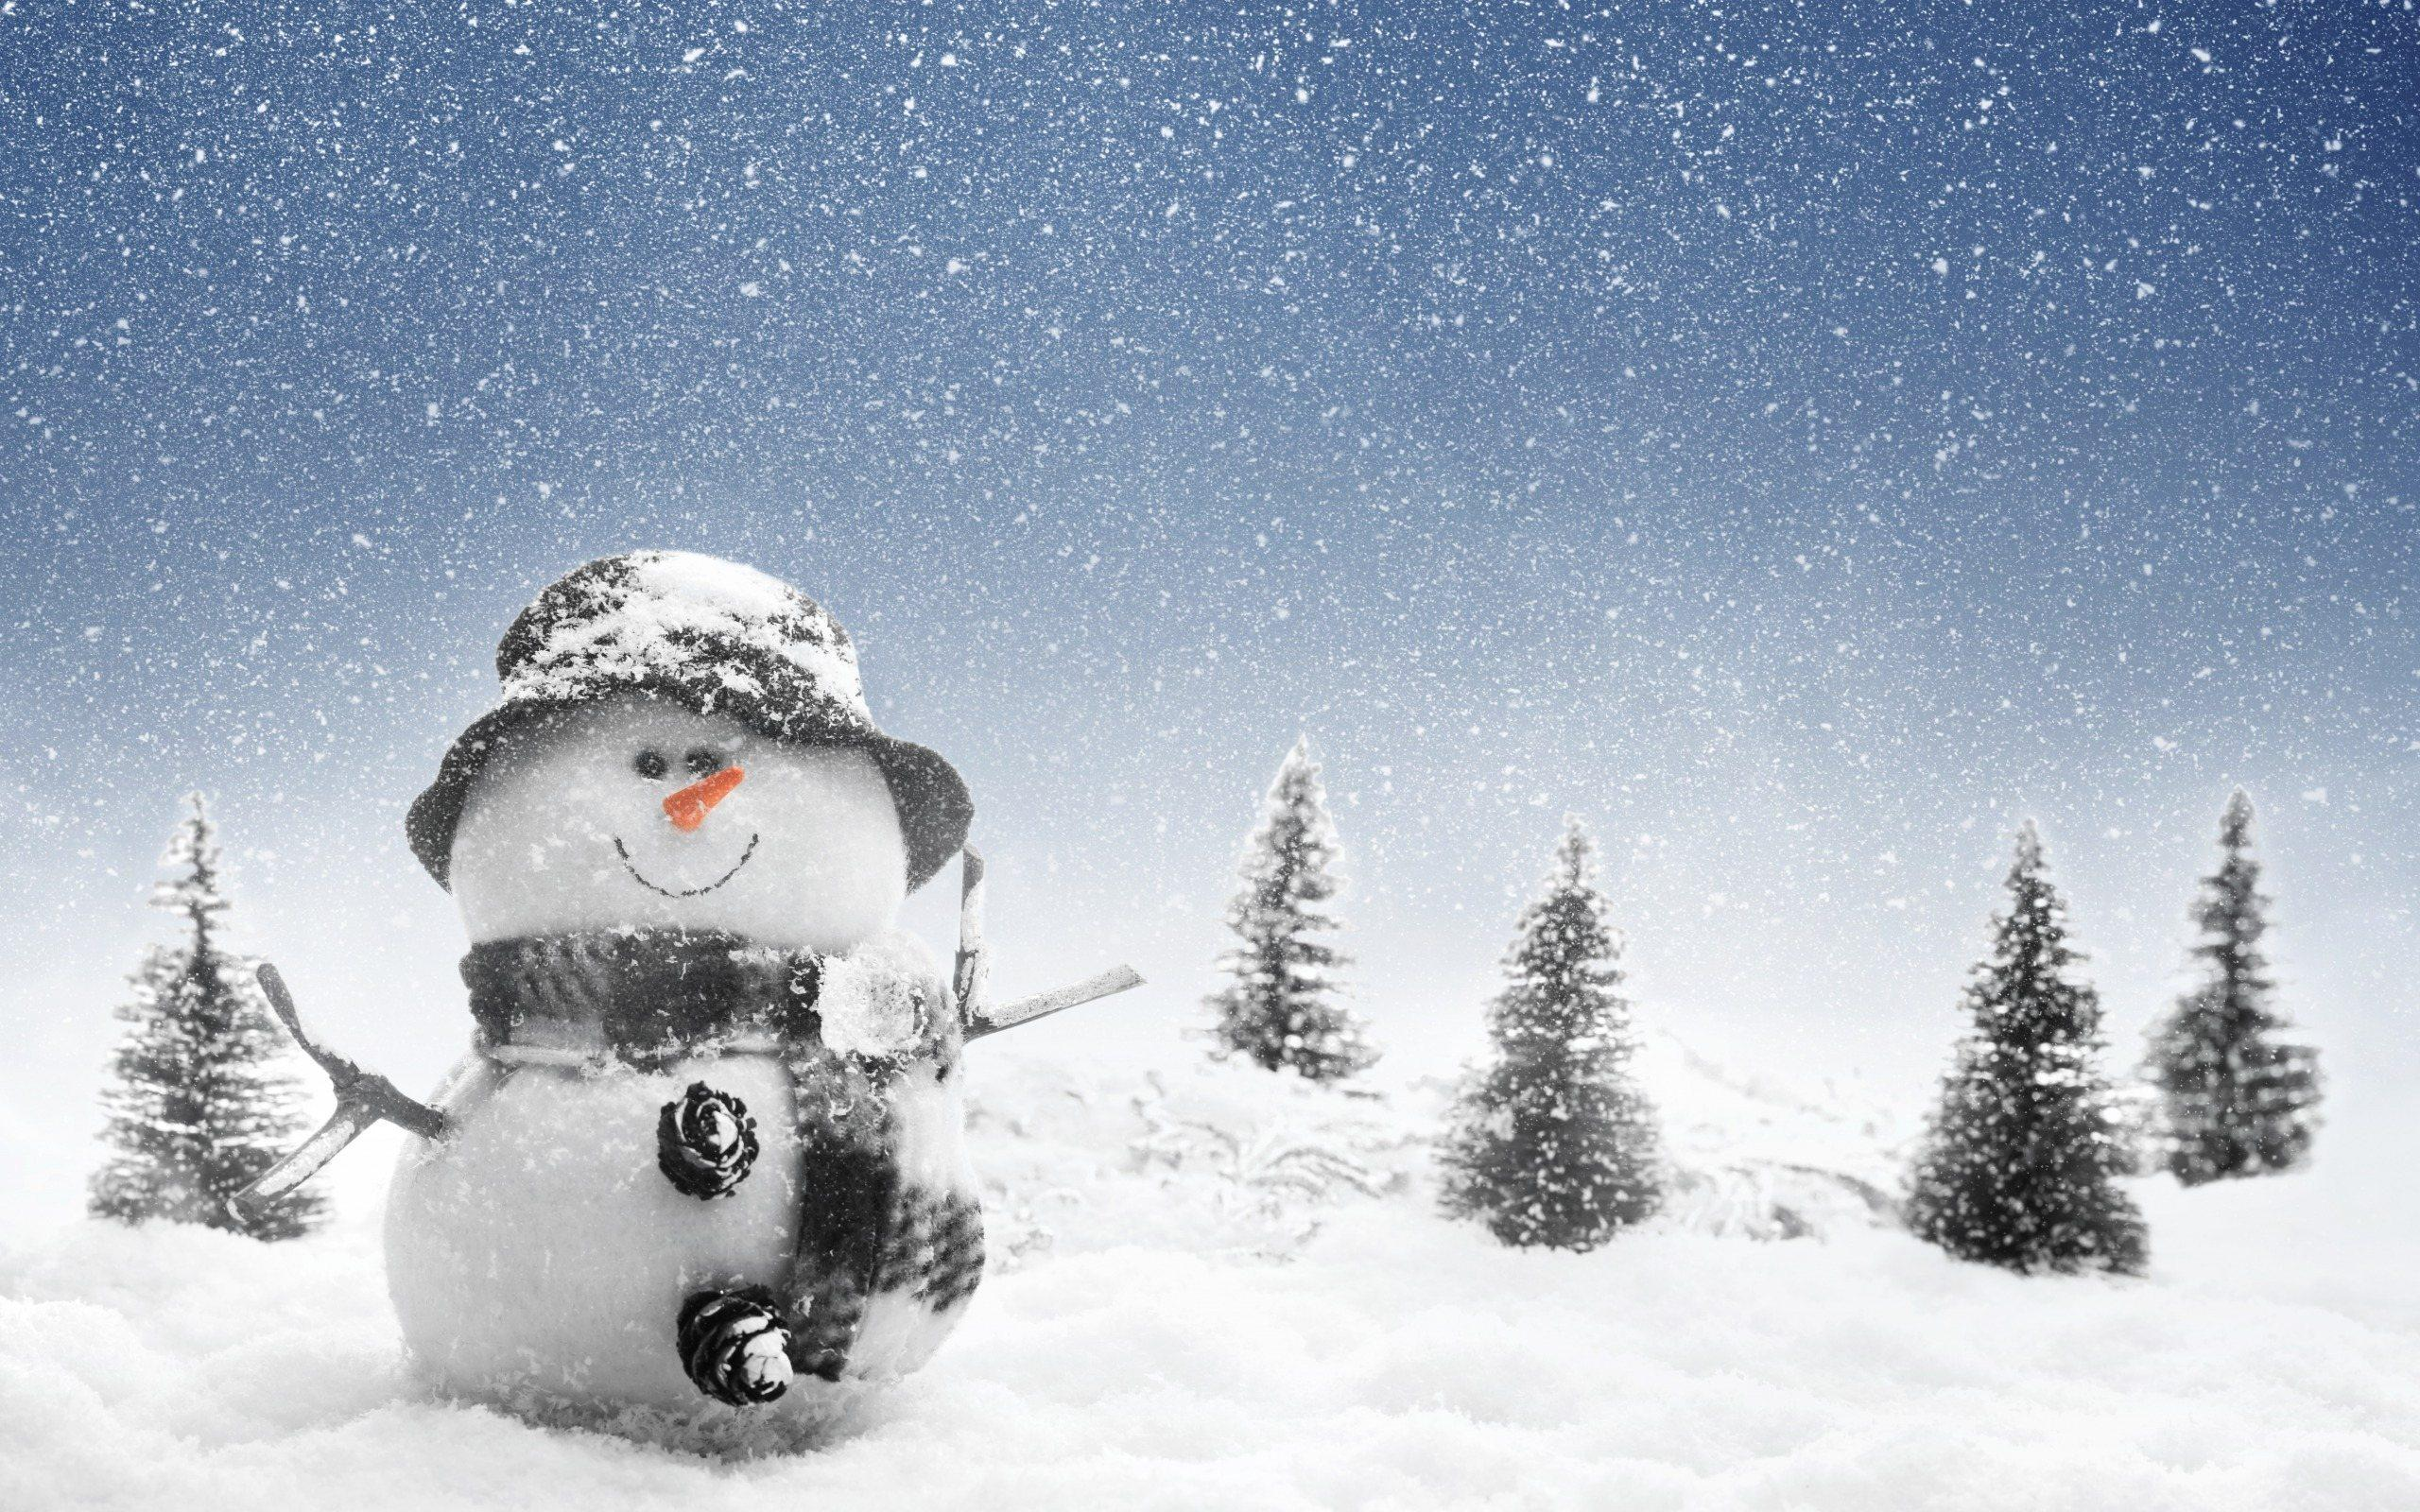 Snowman looking for winter HQ WALLPAPER - (#161288)